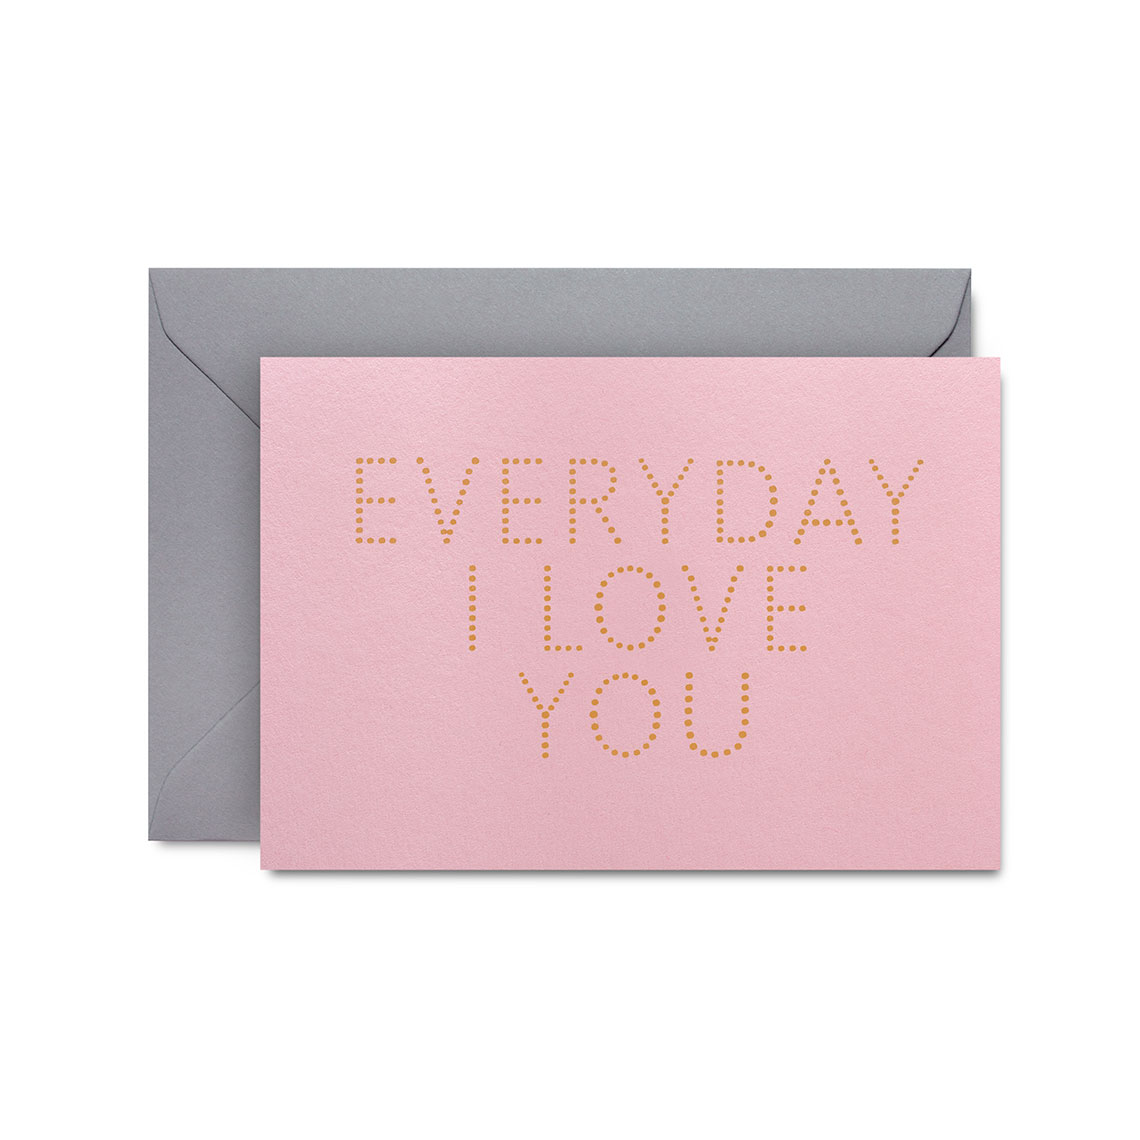 Everyday by Studio Sarah